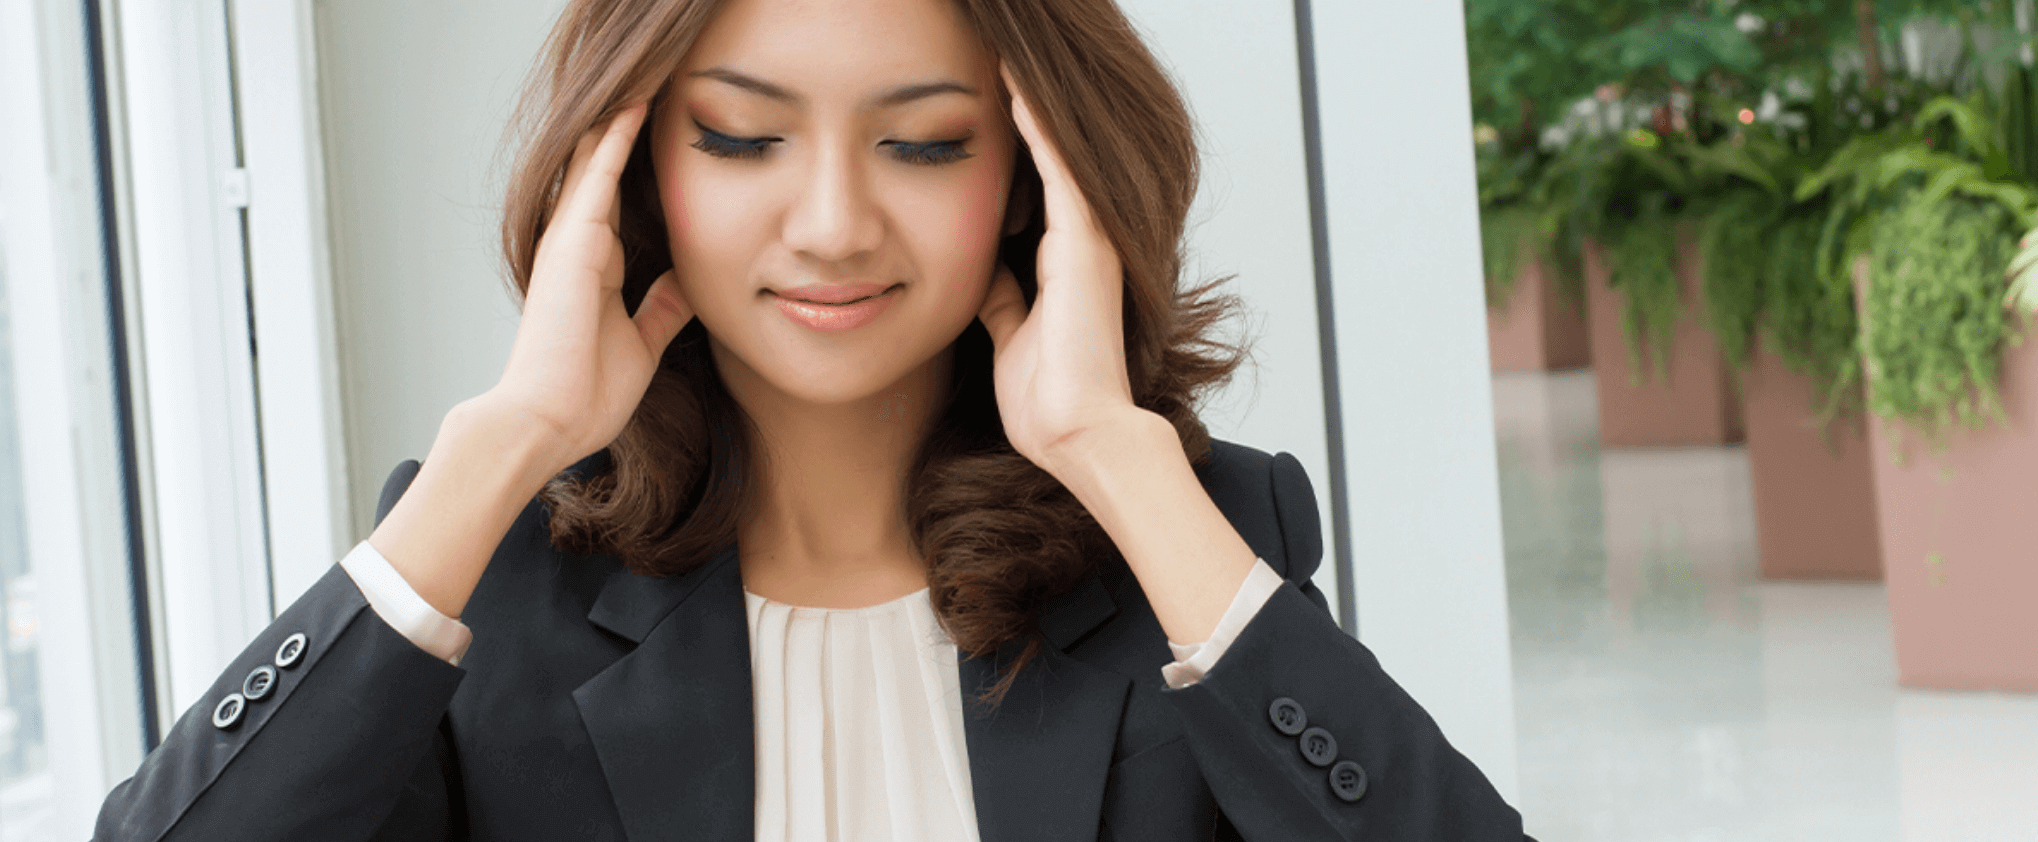 make-your-stress-related-headaches-disappear